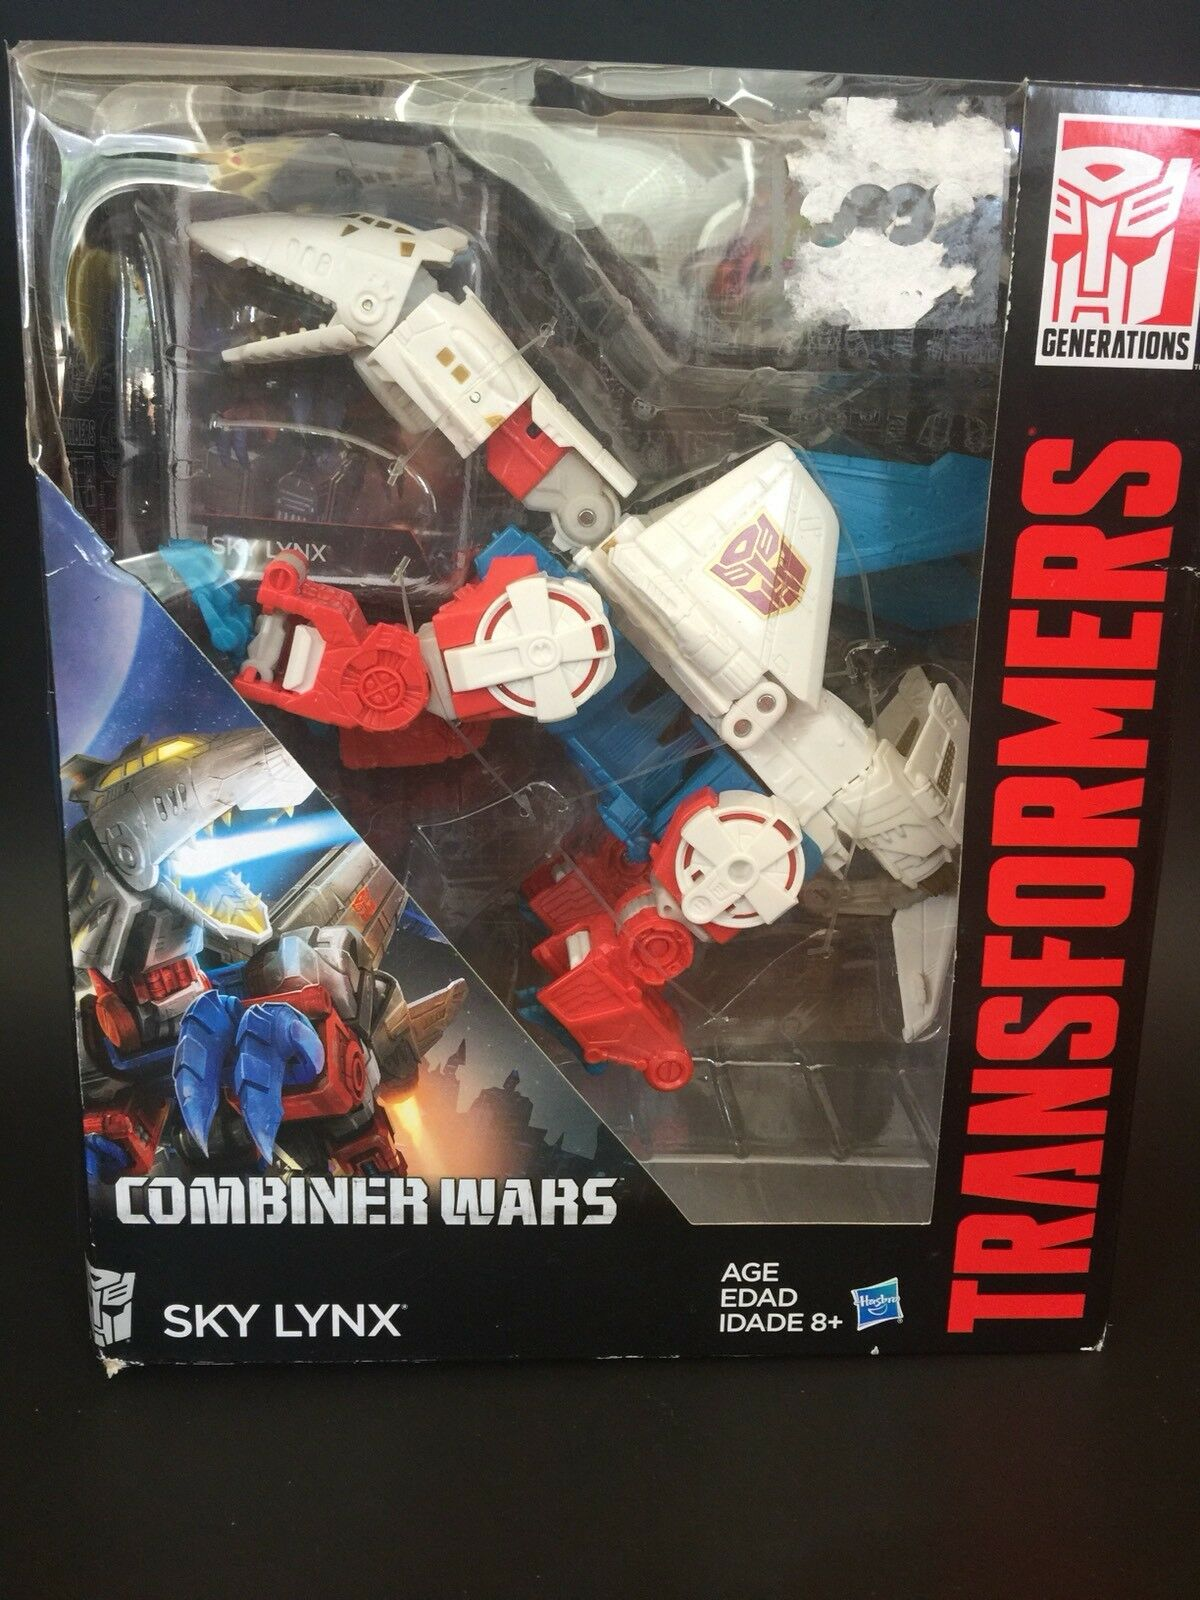 Authentic Transformers Generations Combiner Wars Sky Lynx Ships from USA